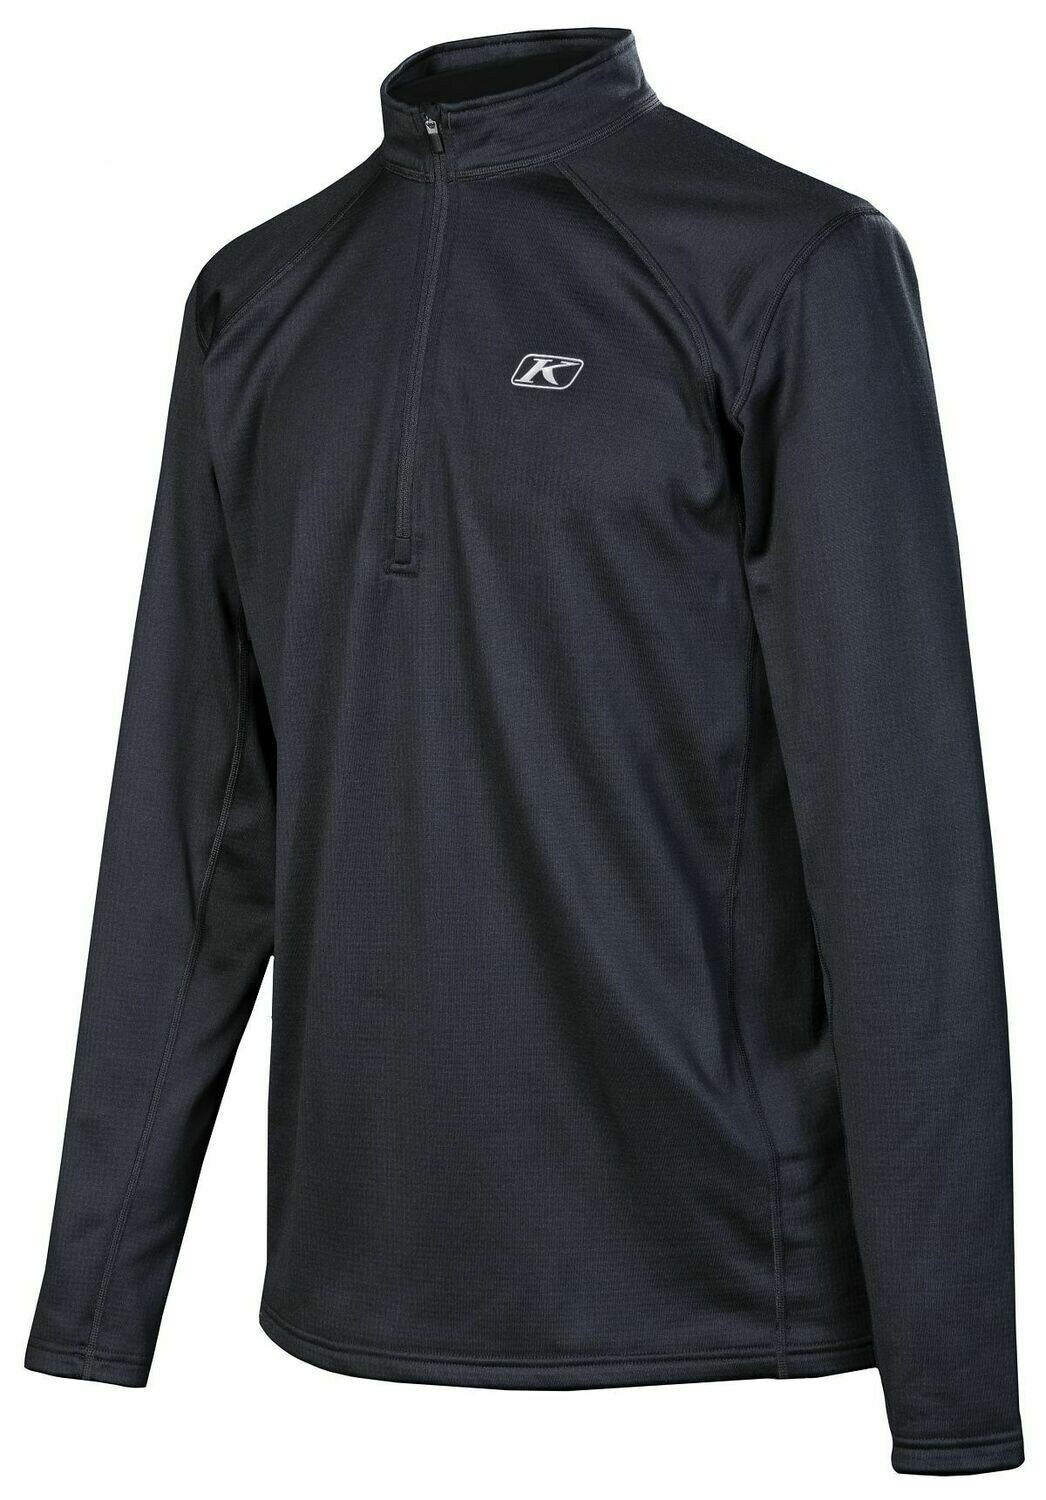 Полувер Klim / Defender 1/4 Zip Shirt